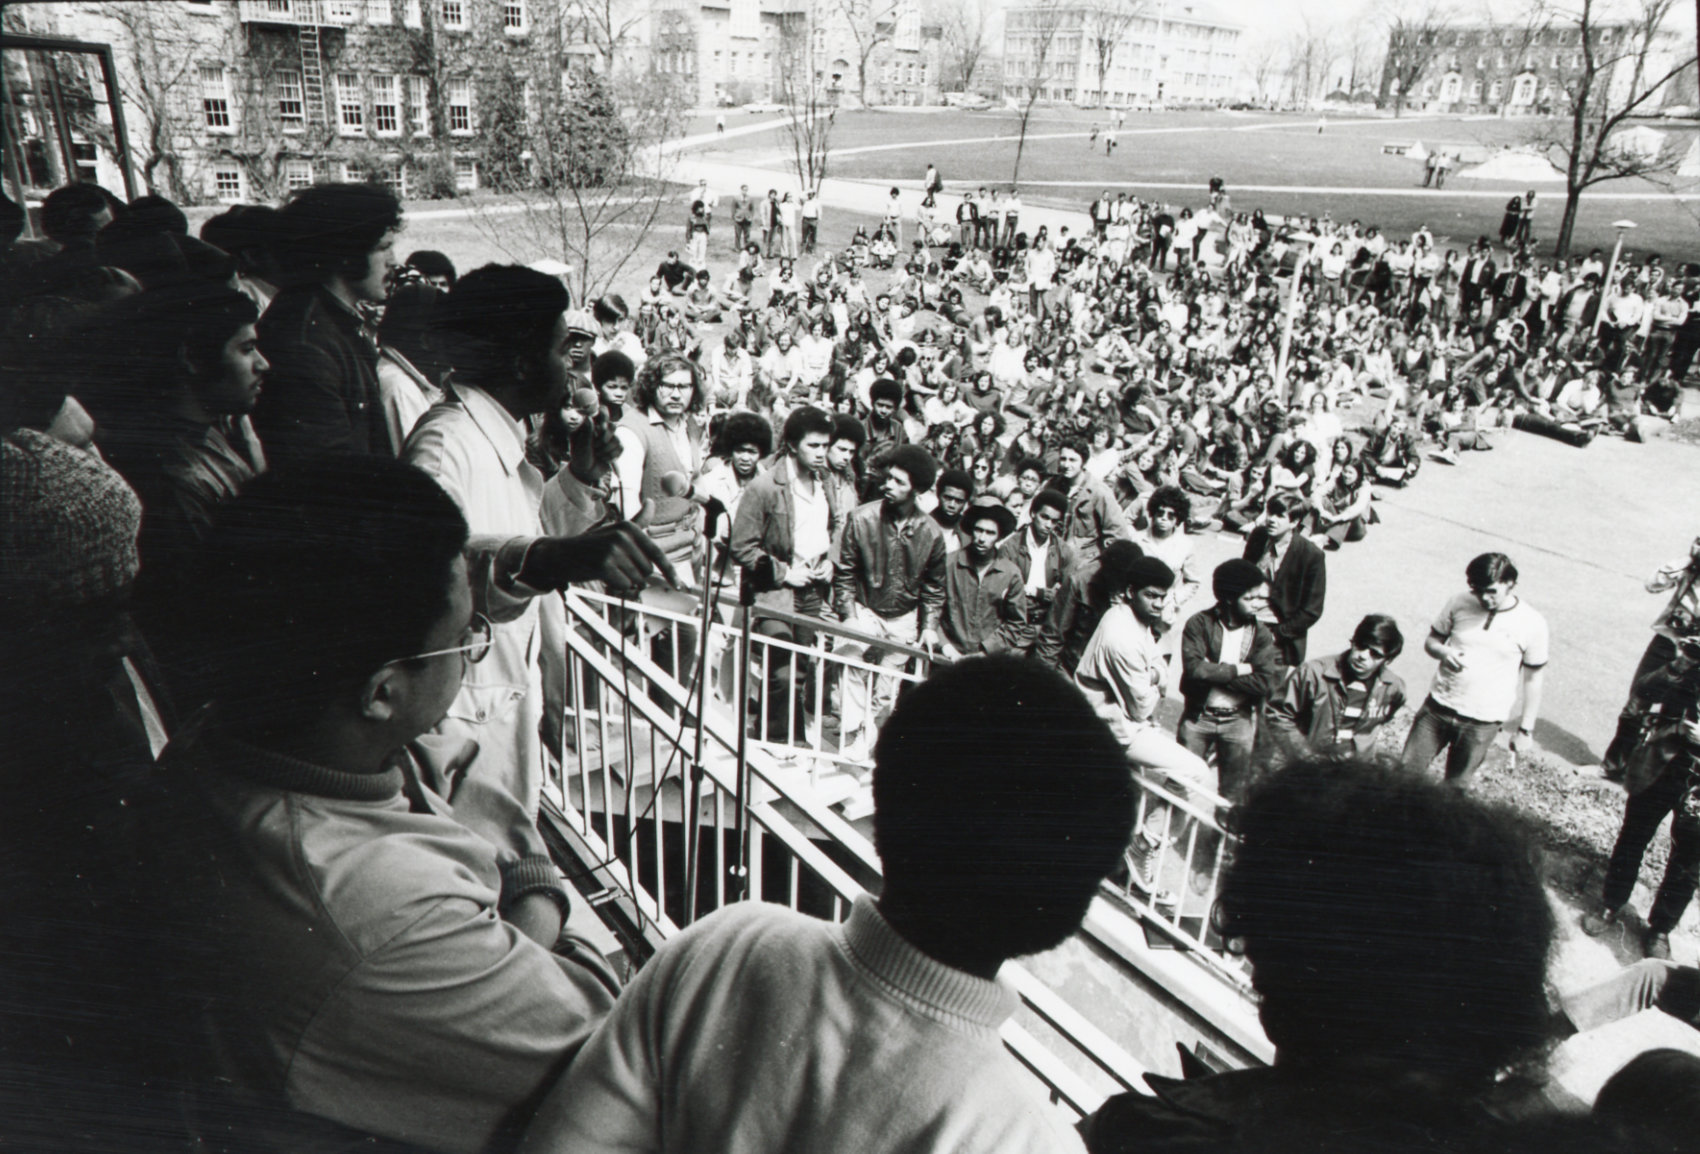 A group of Black Activists giving an address during a takeover of the Carlotti Administration Building in 1971